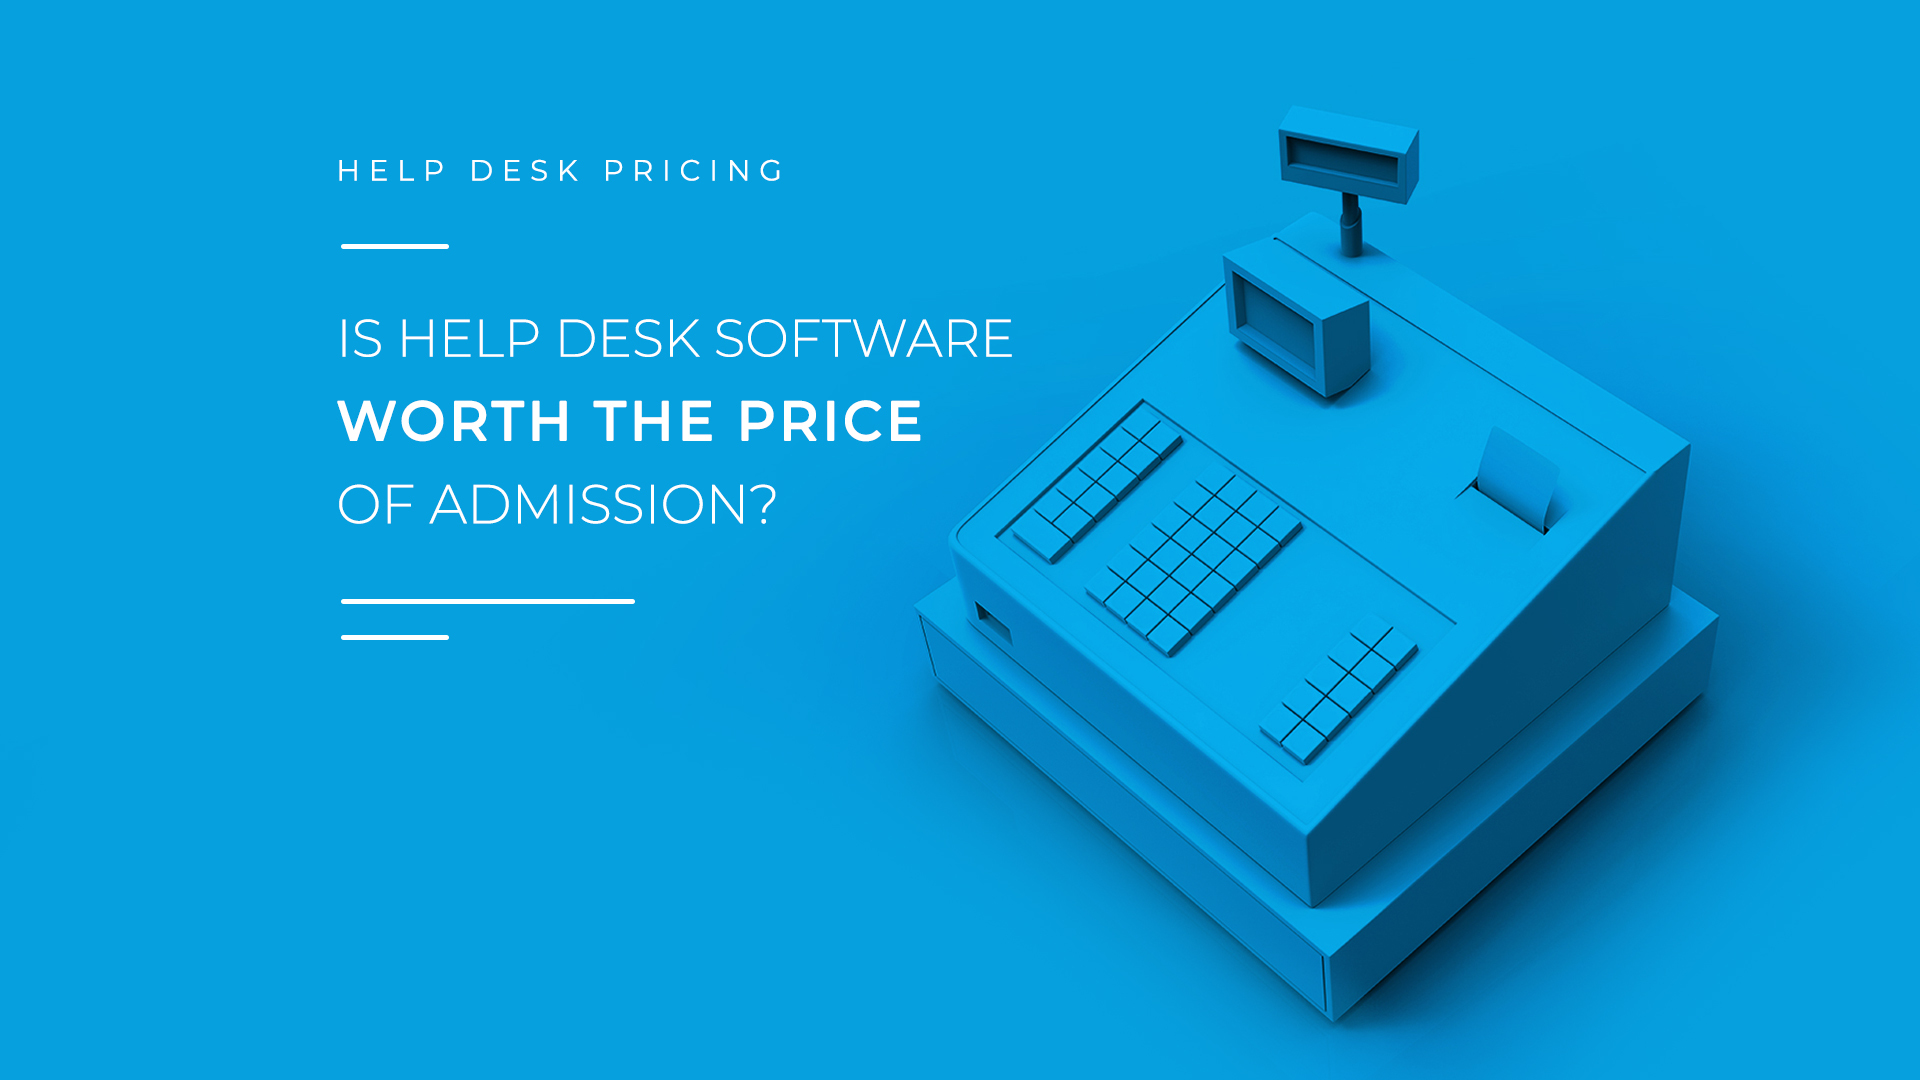 Is Help Desk Software Worth the Price of Admission?